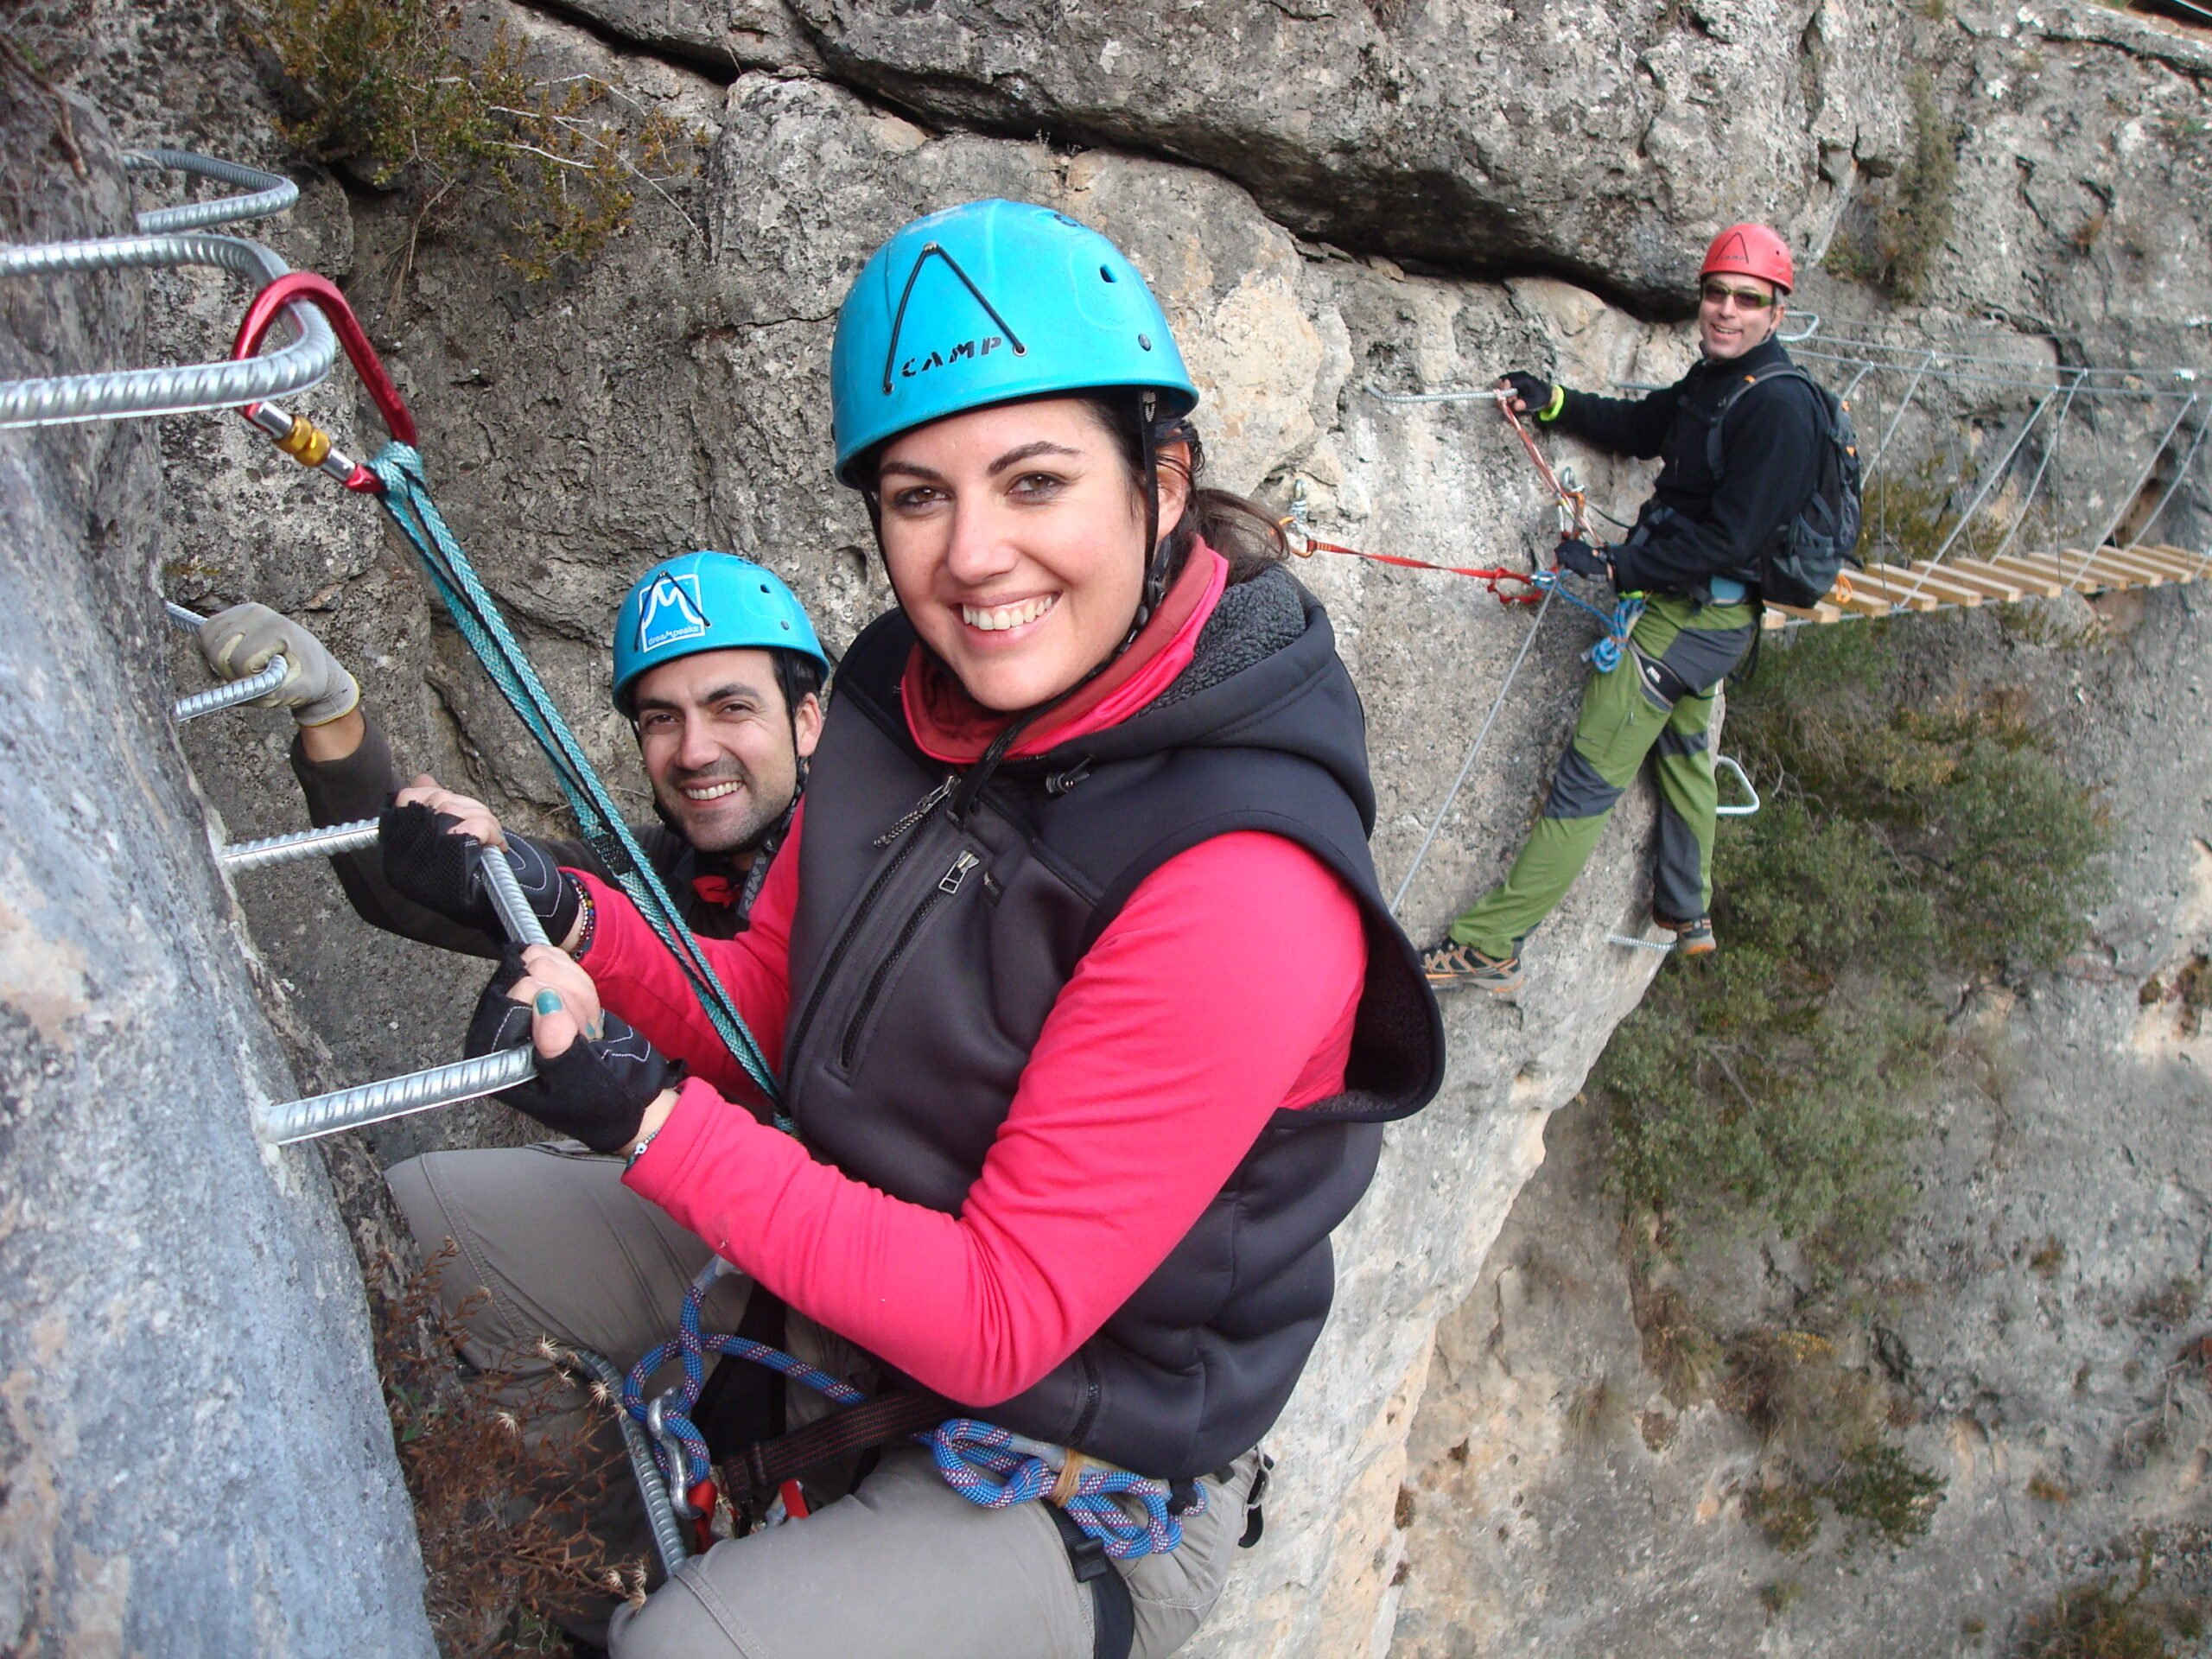 Stunning Activity Just One Hour From Madrid In Our Via Ferrata Adventure Tour